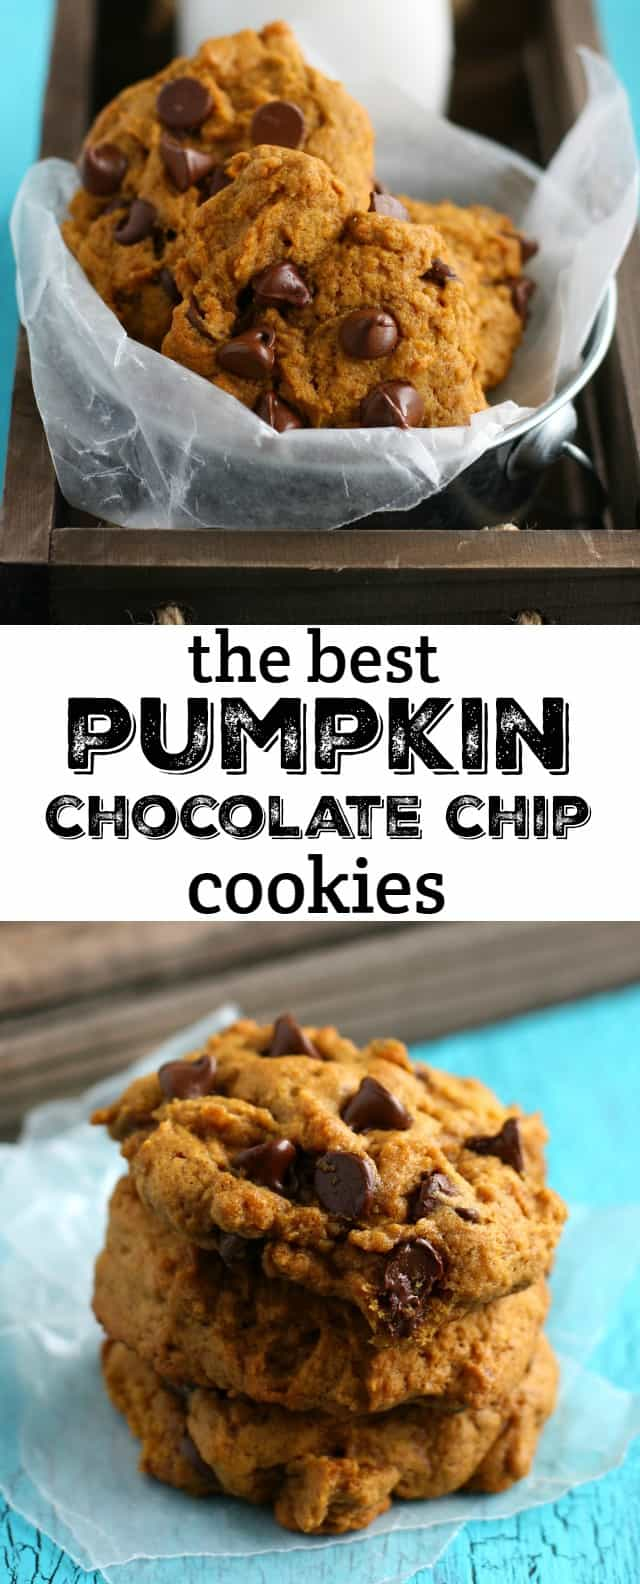 These pumpkin chocolate chip cookies are simply irresistible! Thick and delicious, and loaded with chocolate chips. These are gluten free and vegan, and everyone LOVES them!